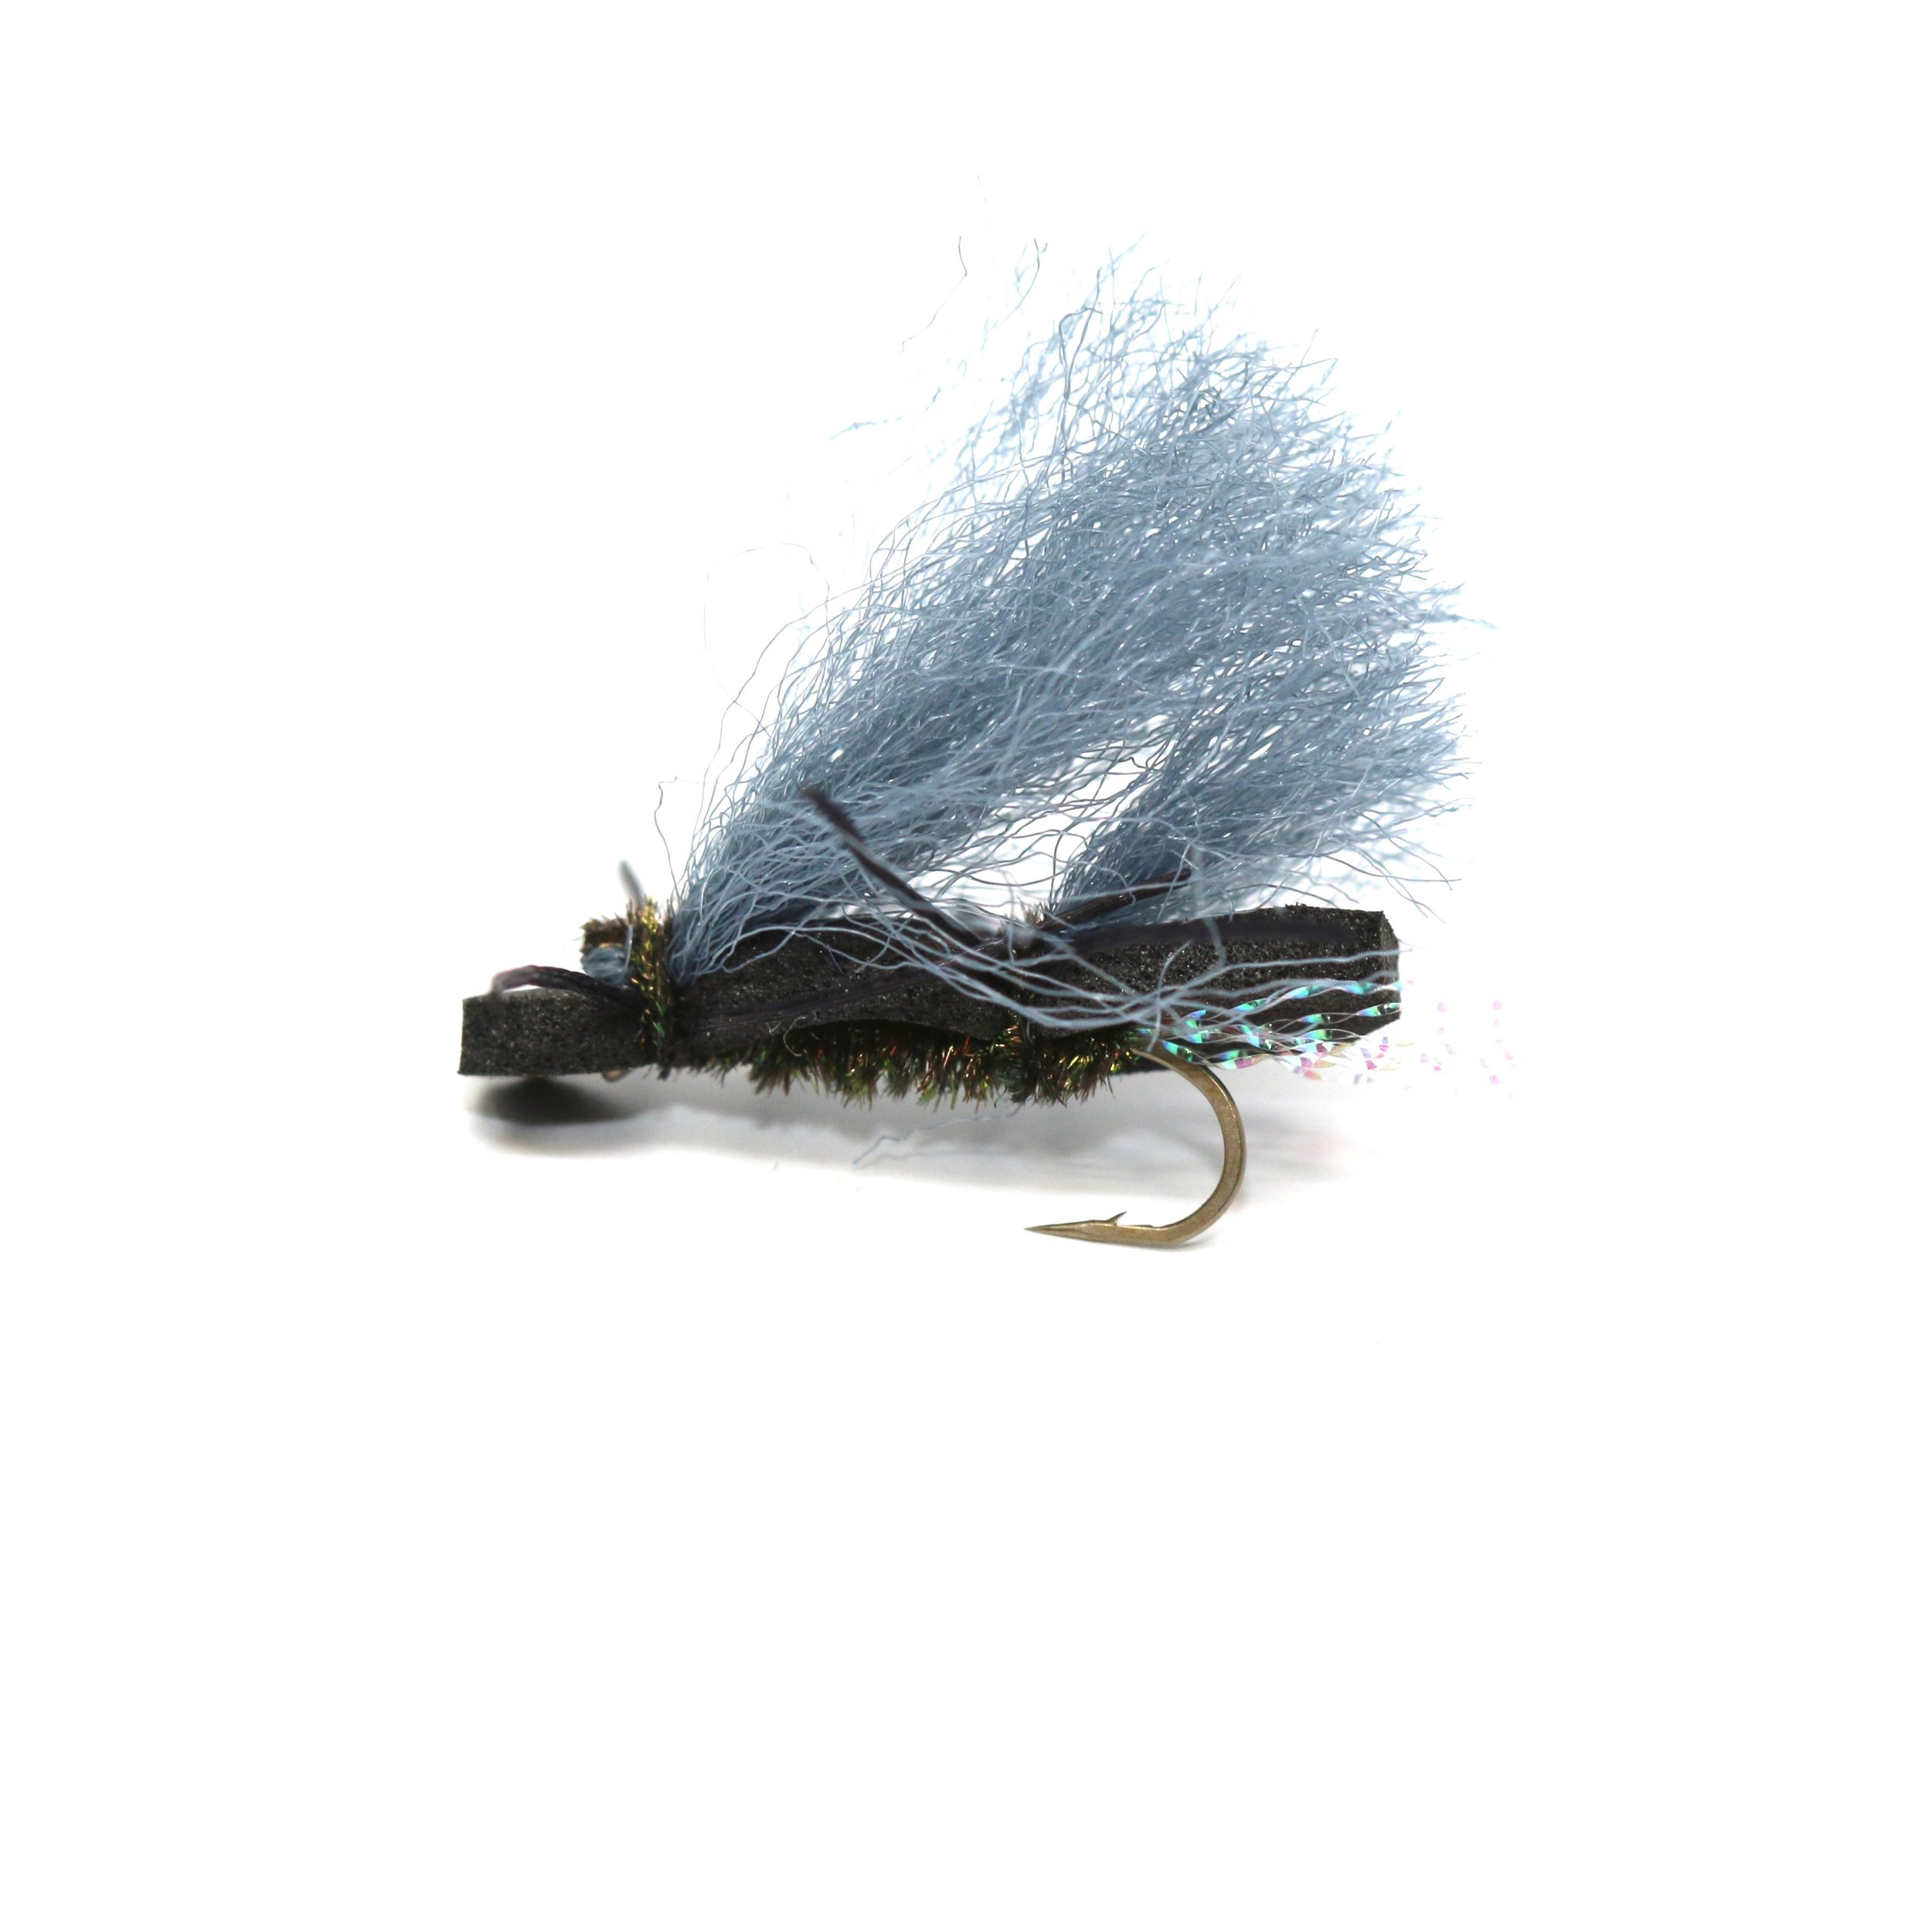 Chubby Chernobyl Grey Wing:  https://ironbowflyshop.ca/collections/flies/products/chubby-chernobyl-gray-wing